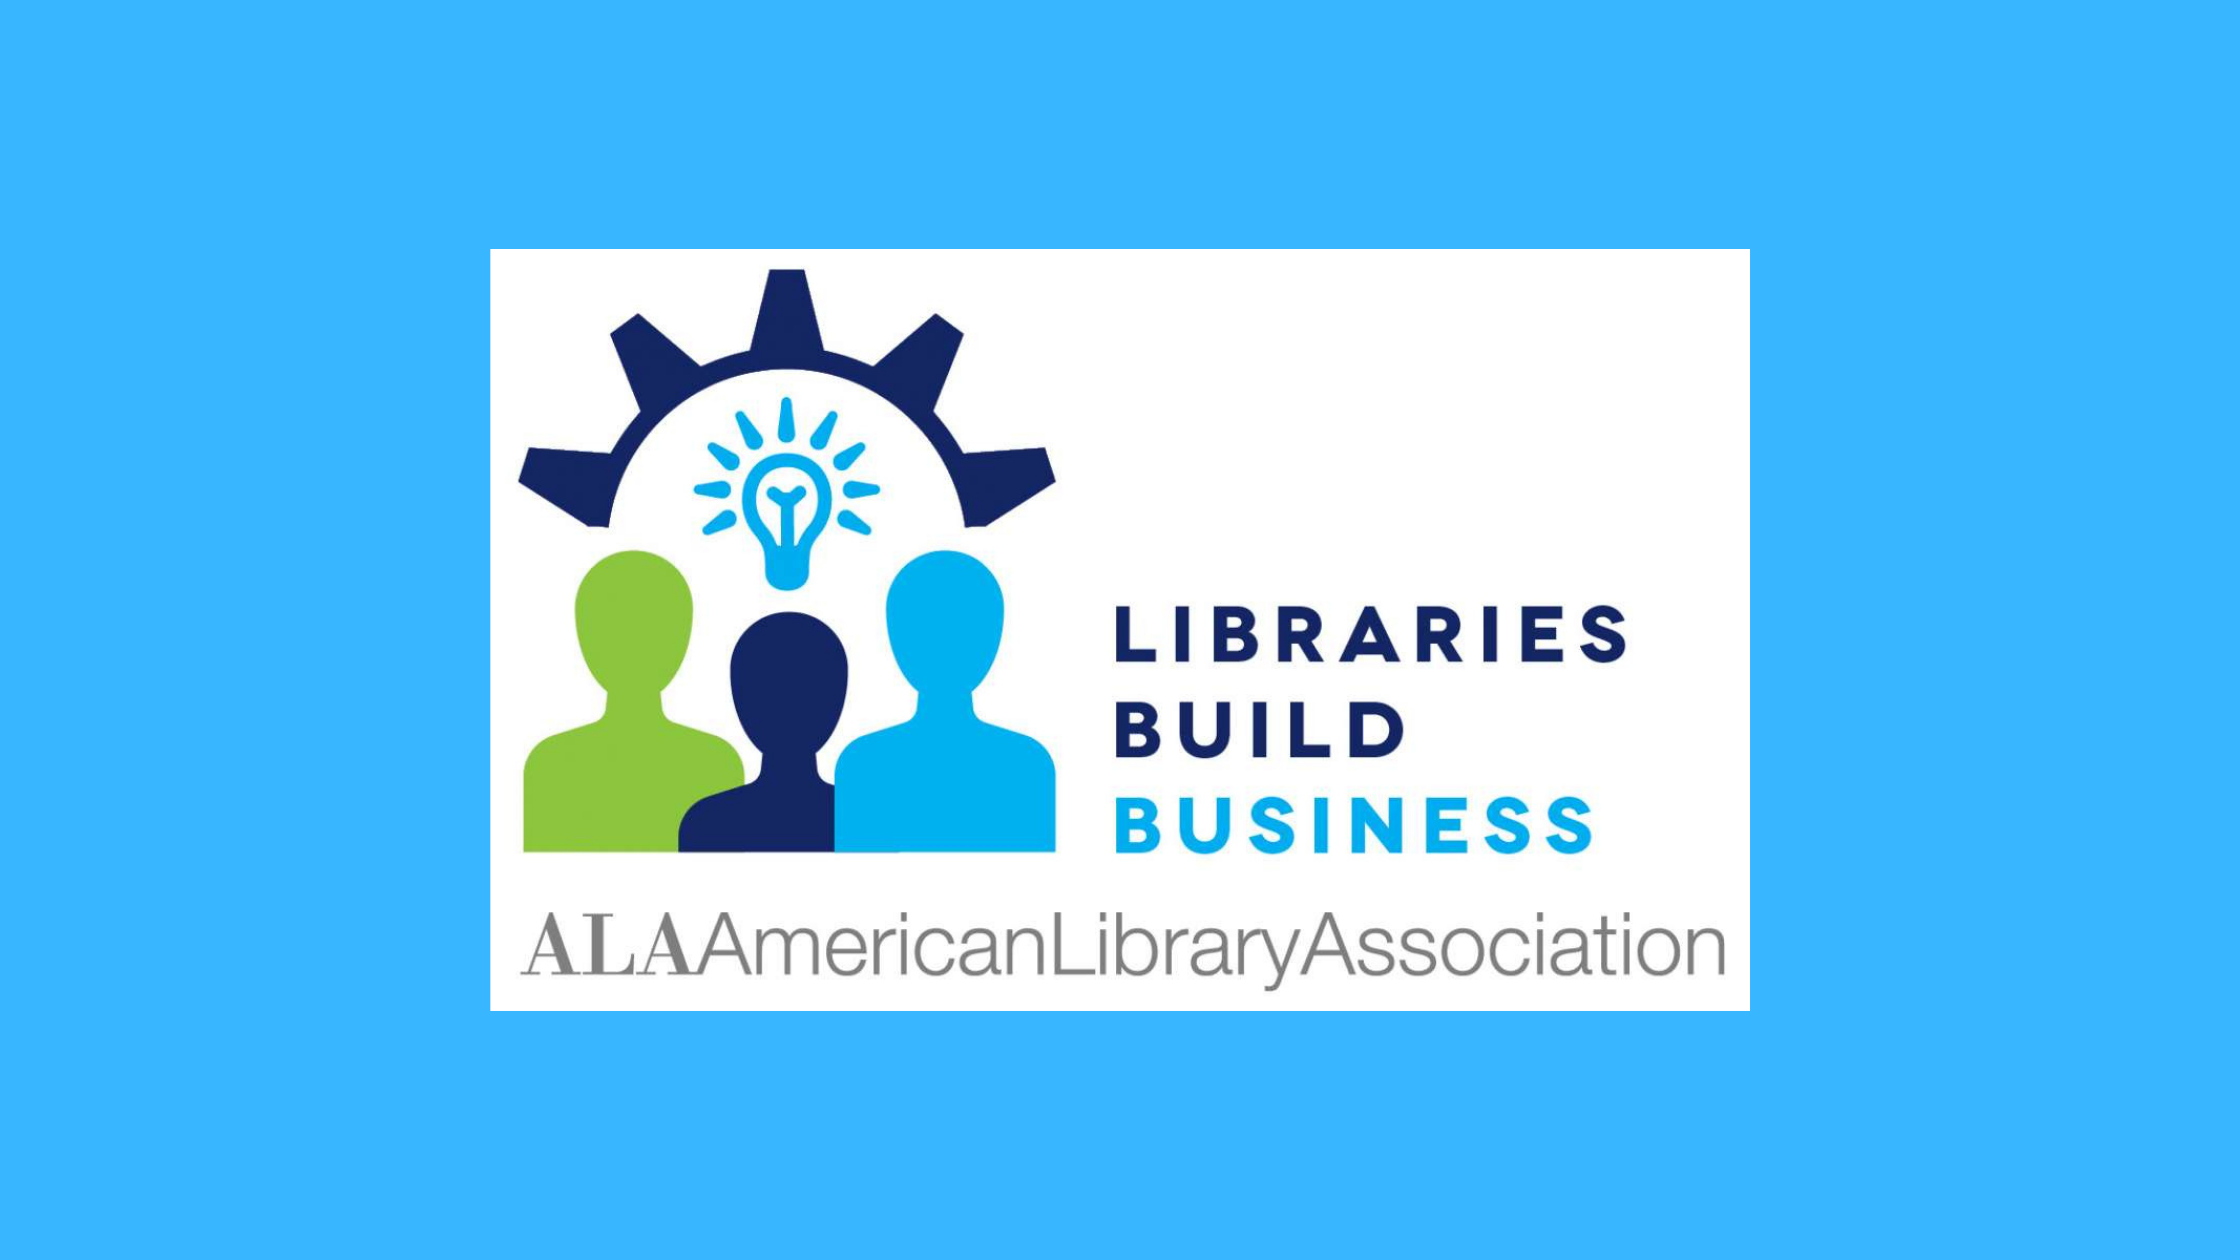 ala libraries build business logo